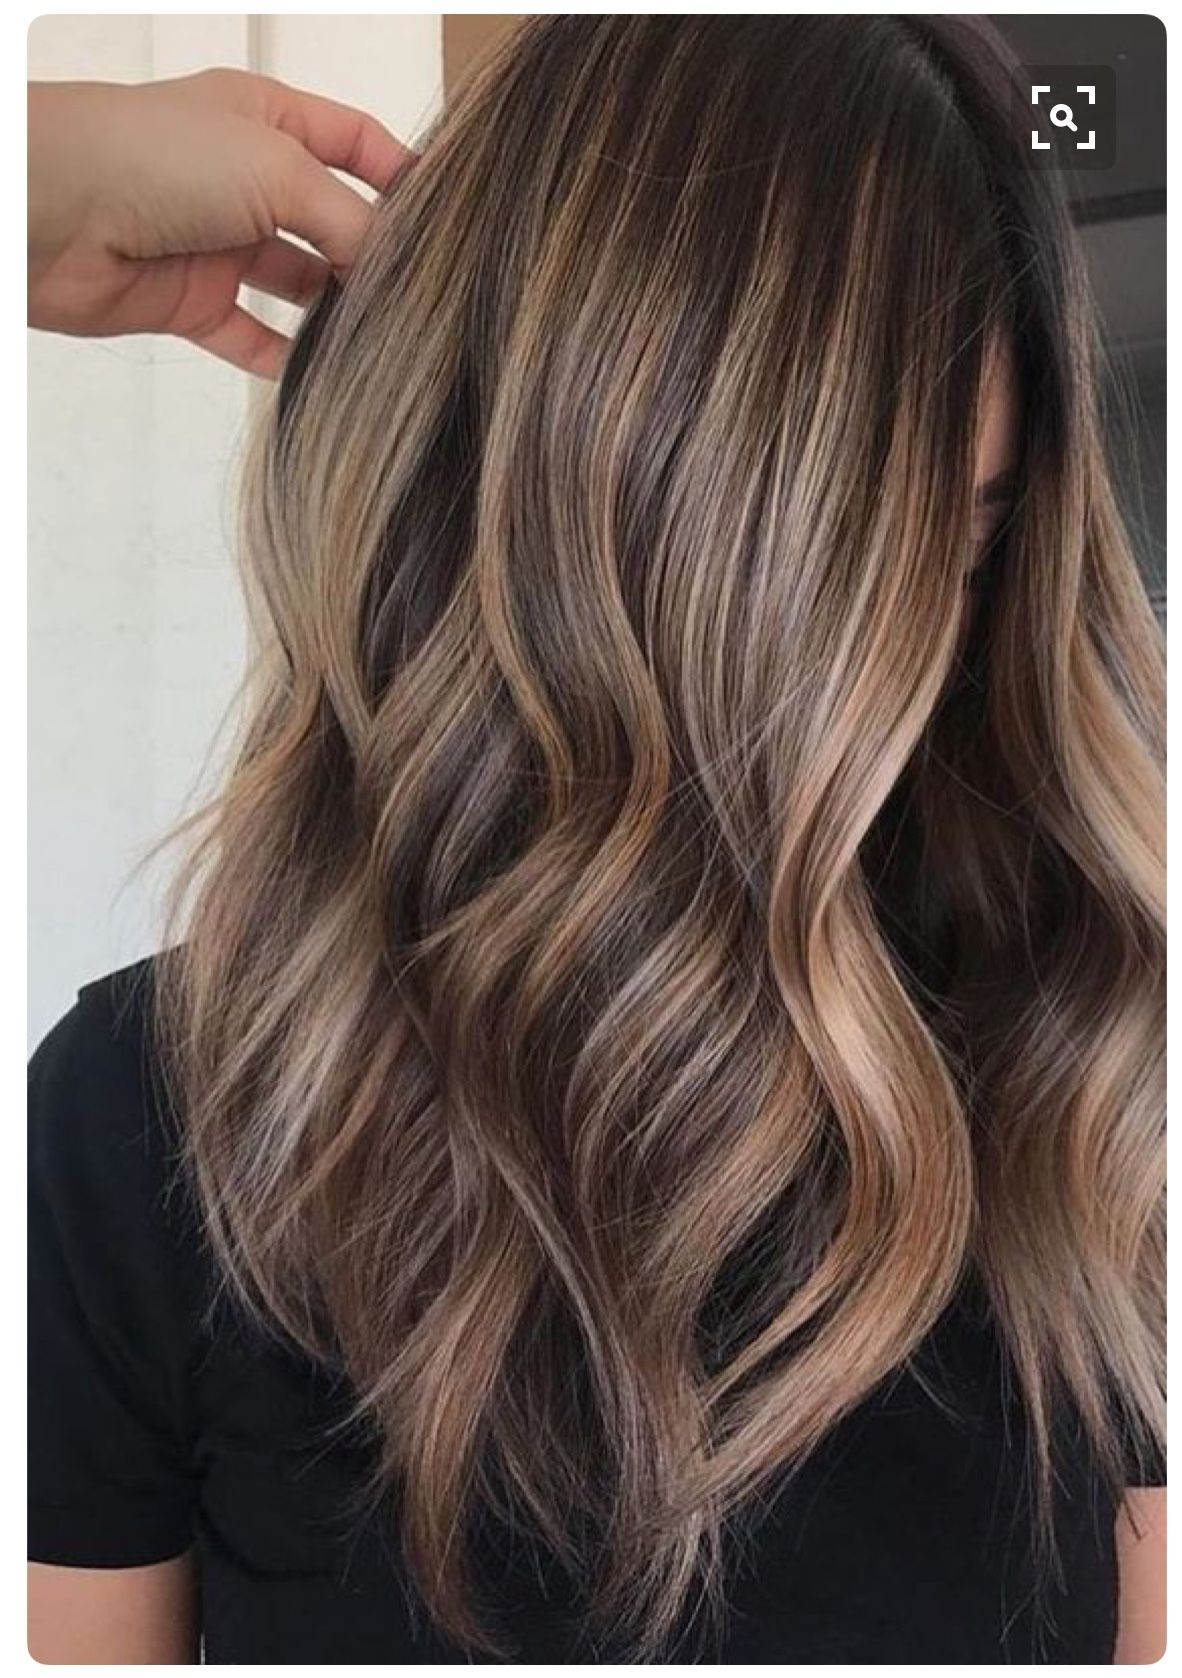 Pin By Jessalyn Reyes On Hair Styles Colors Long Hair Styles